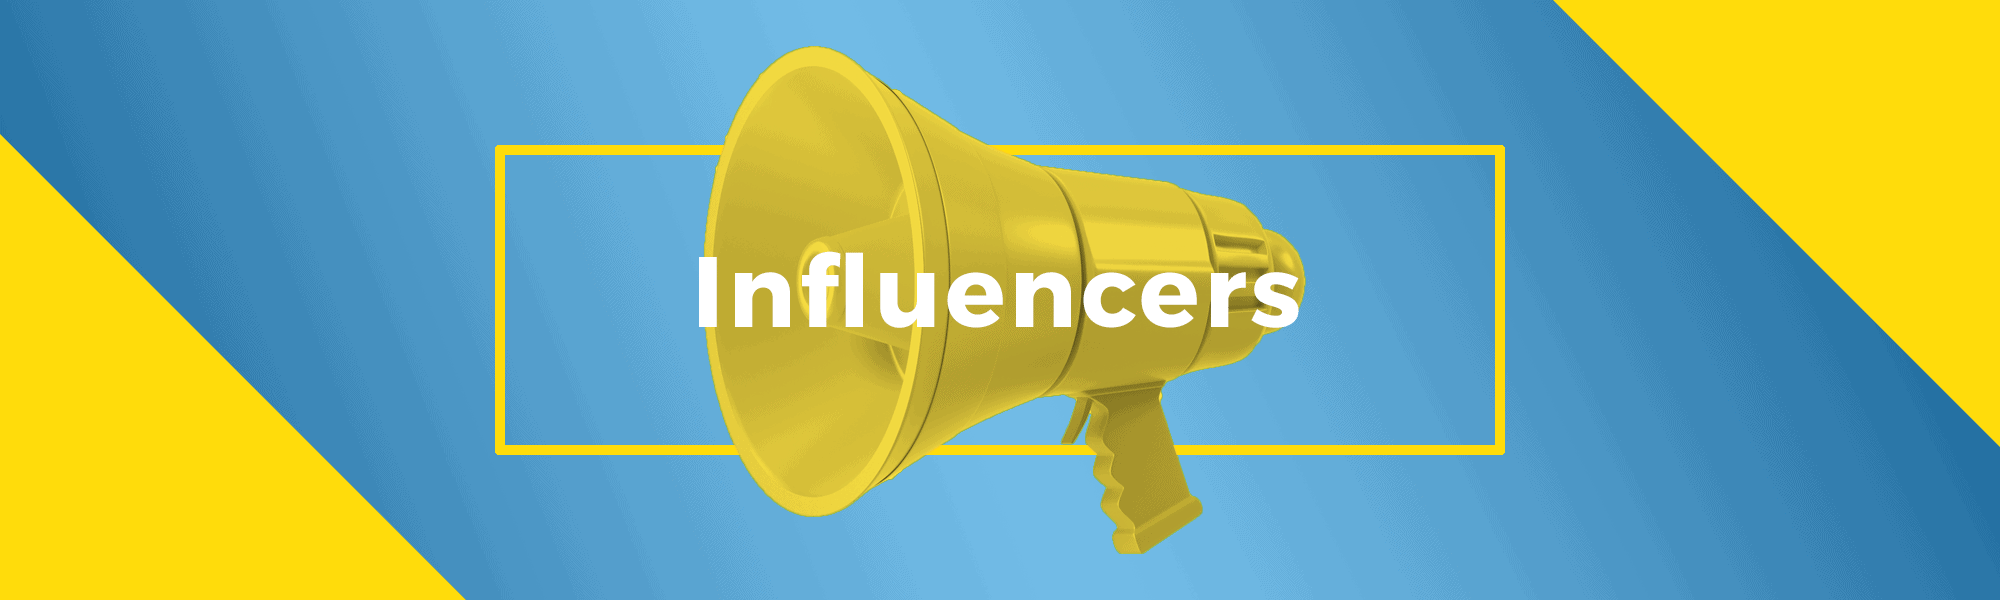 M2F Banners_Influencers